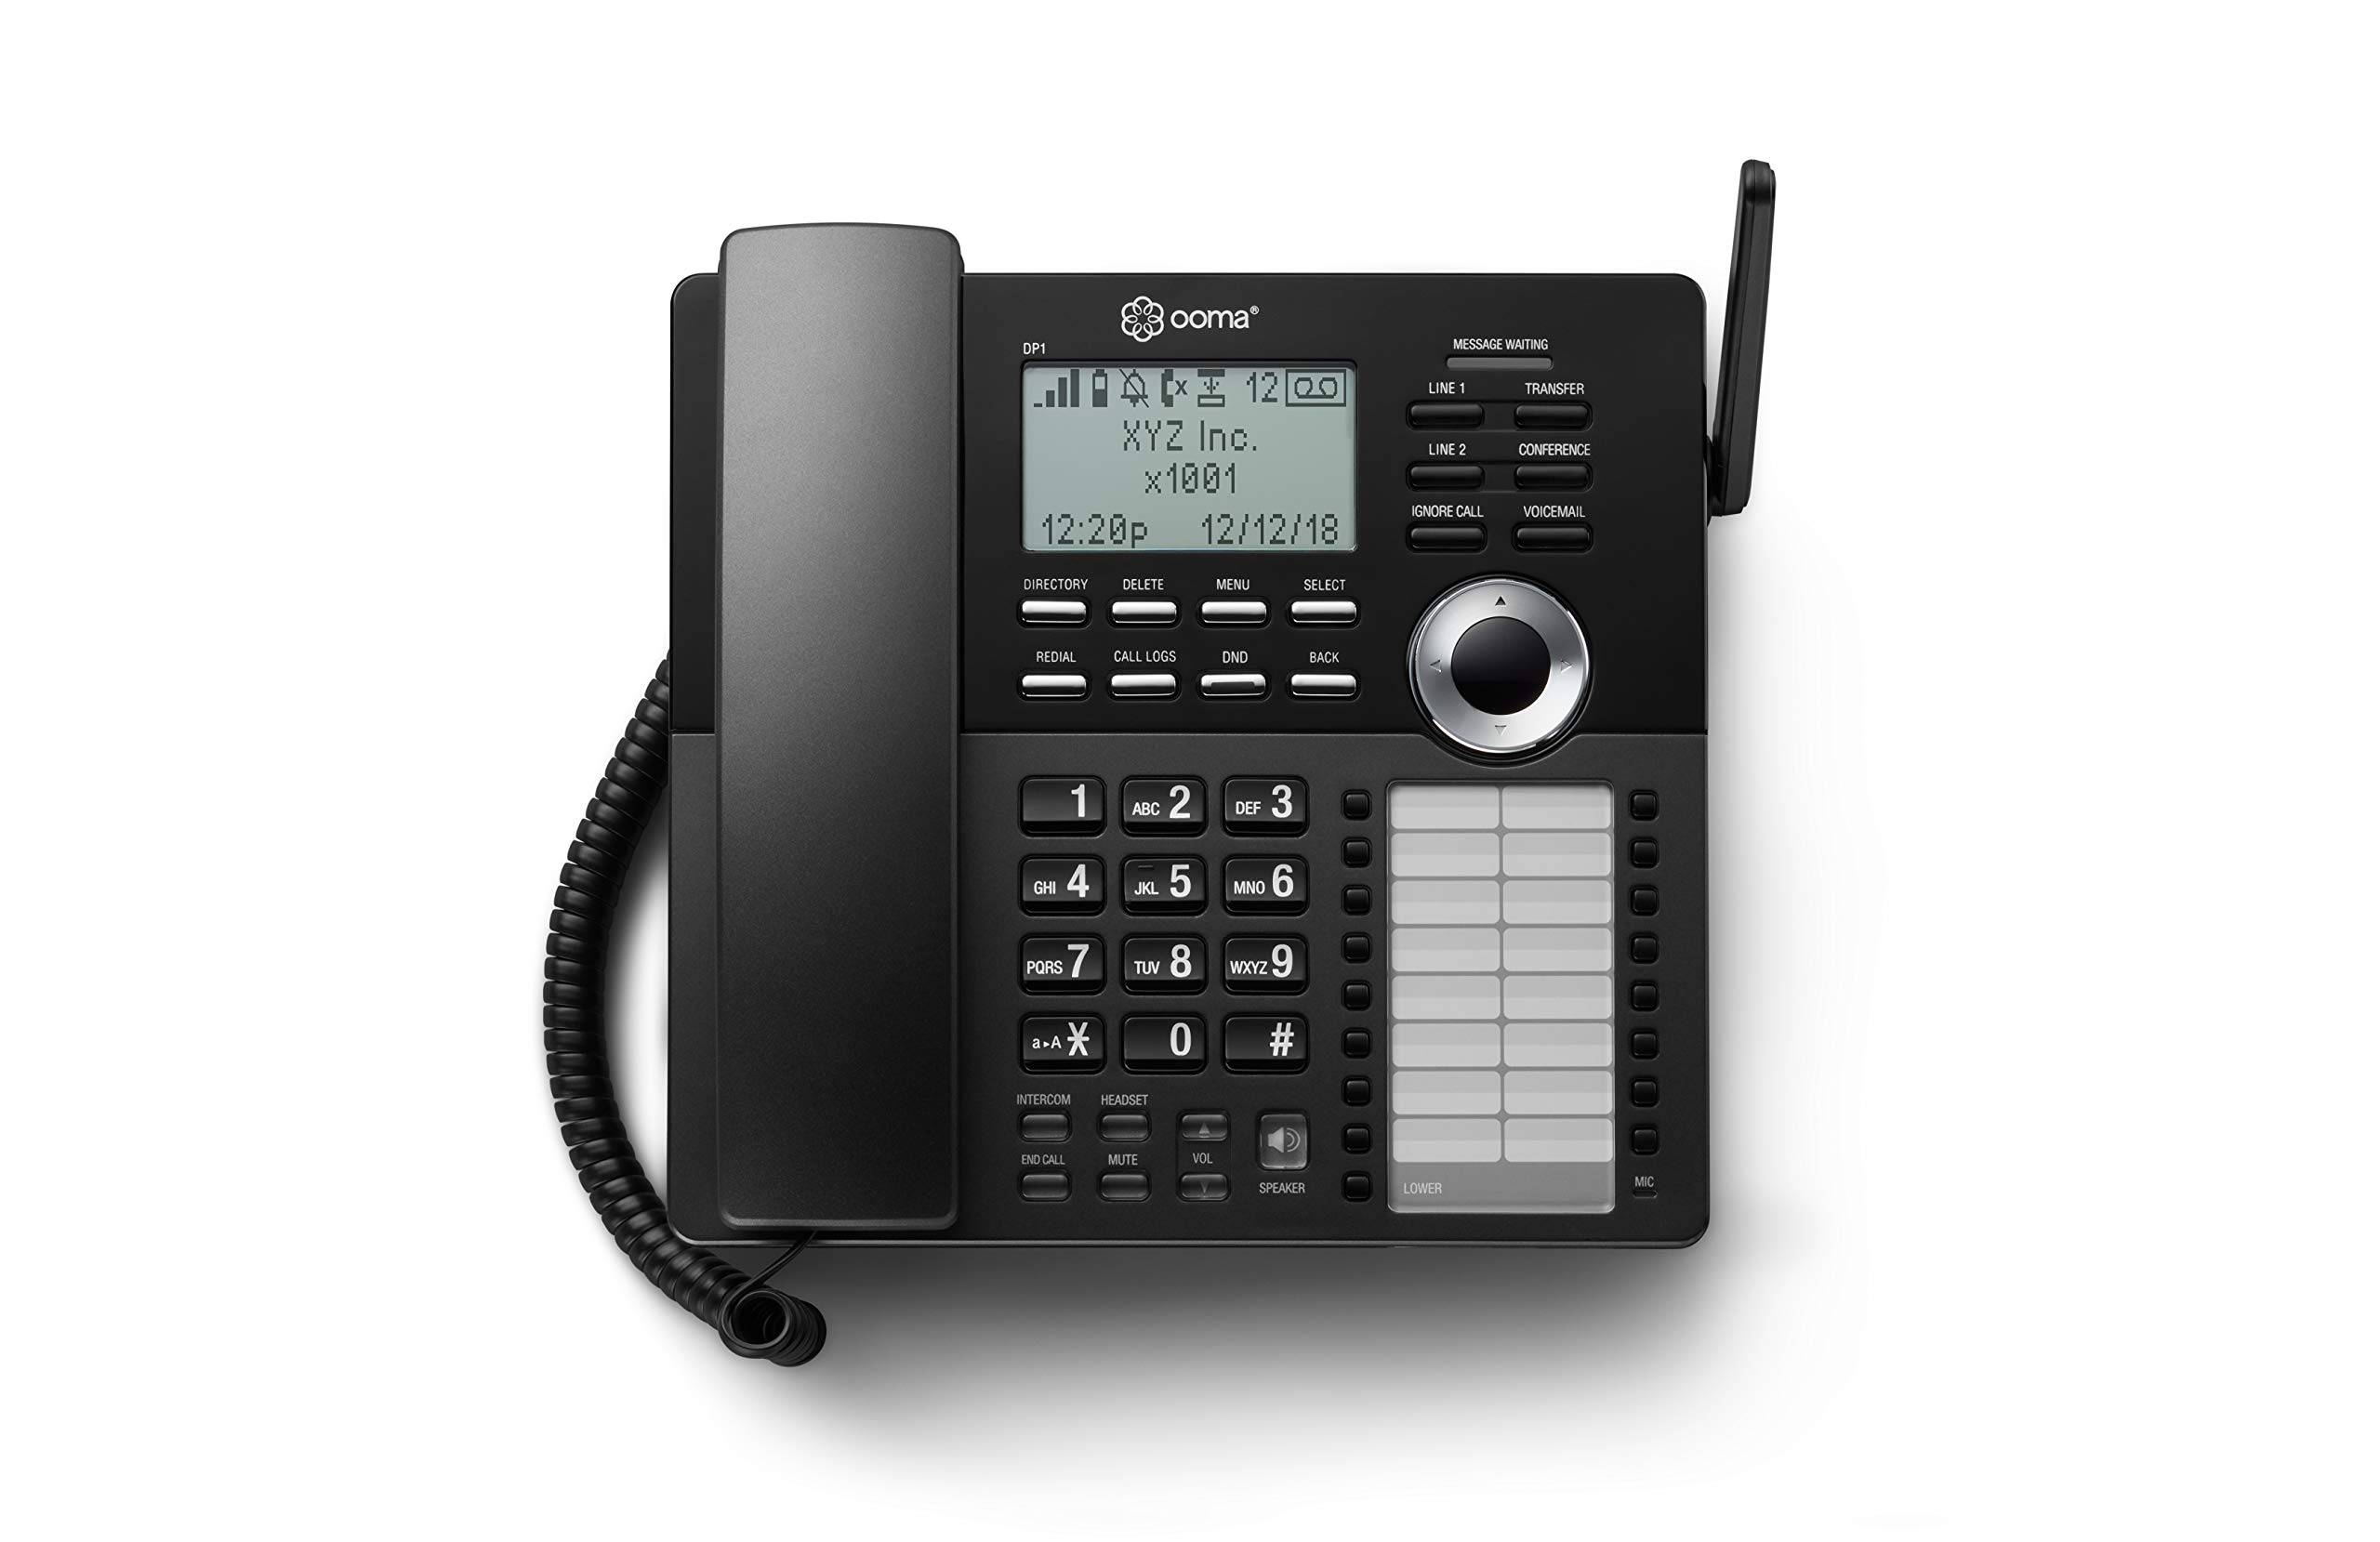 Ooma Office DP1-O Desk Phone - Place it almost anywhere and wirelessly connect the phone to the Ooma Office Base Station. by ooma